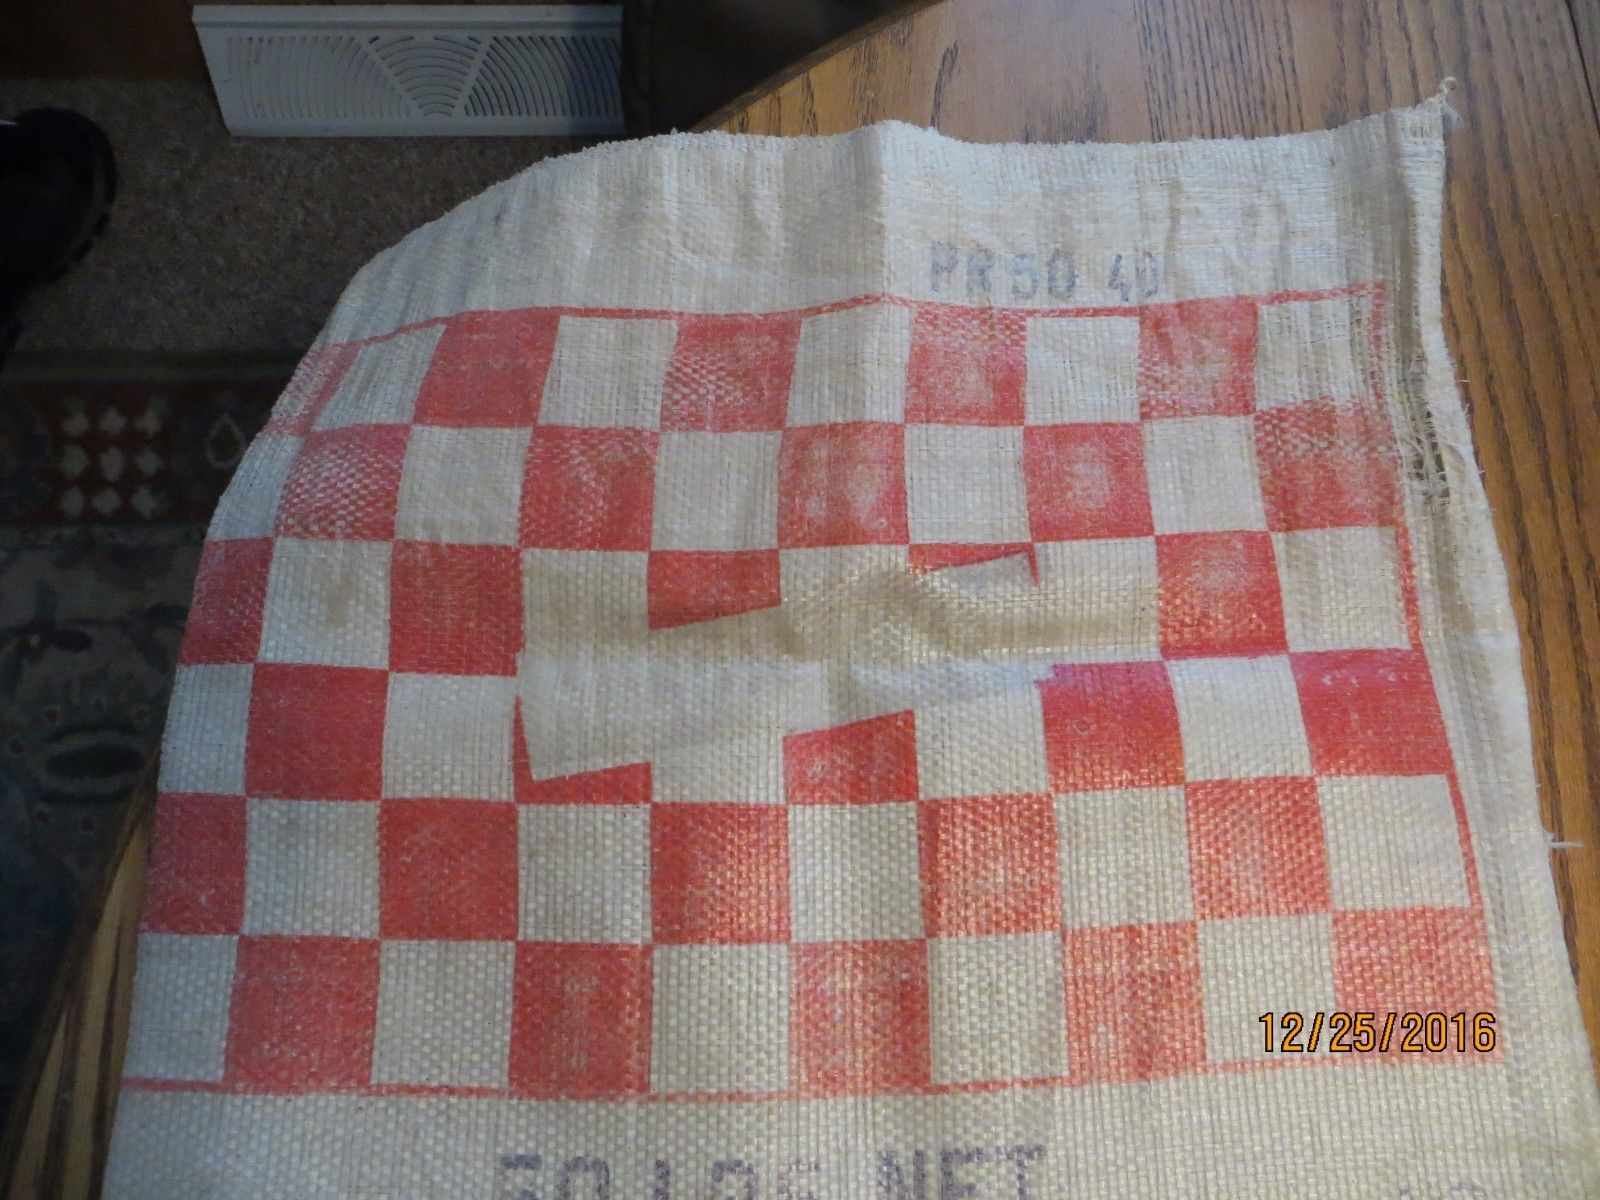 RALSTON PURINA CHOWS COMPANY ADVERTISING CHECKERBOARD SQUARE FEED & SEED BAG